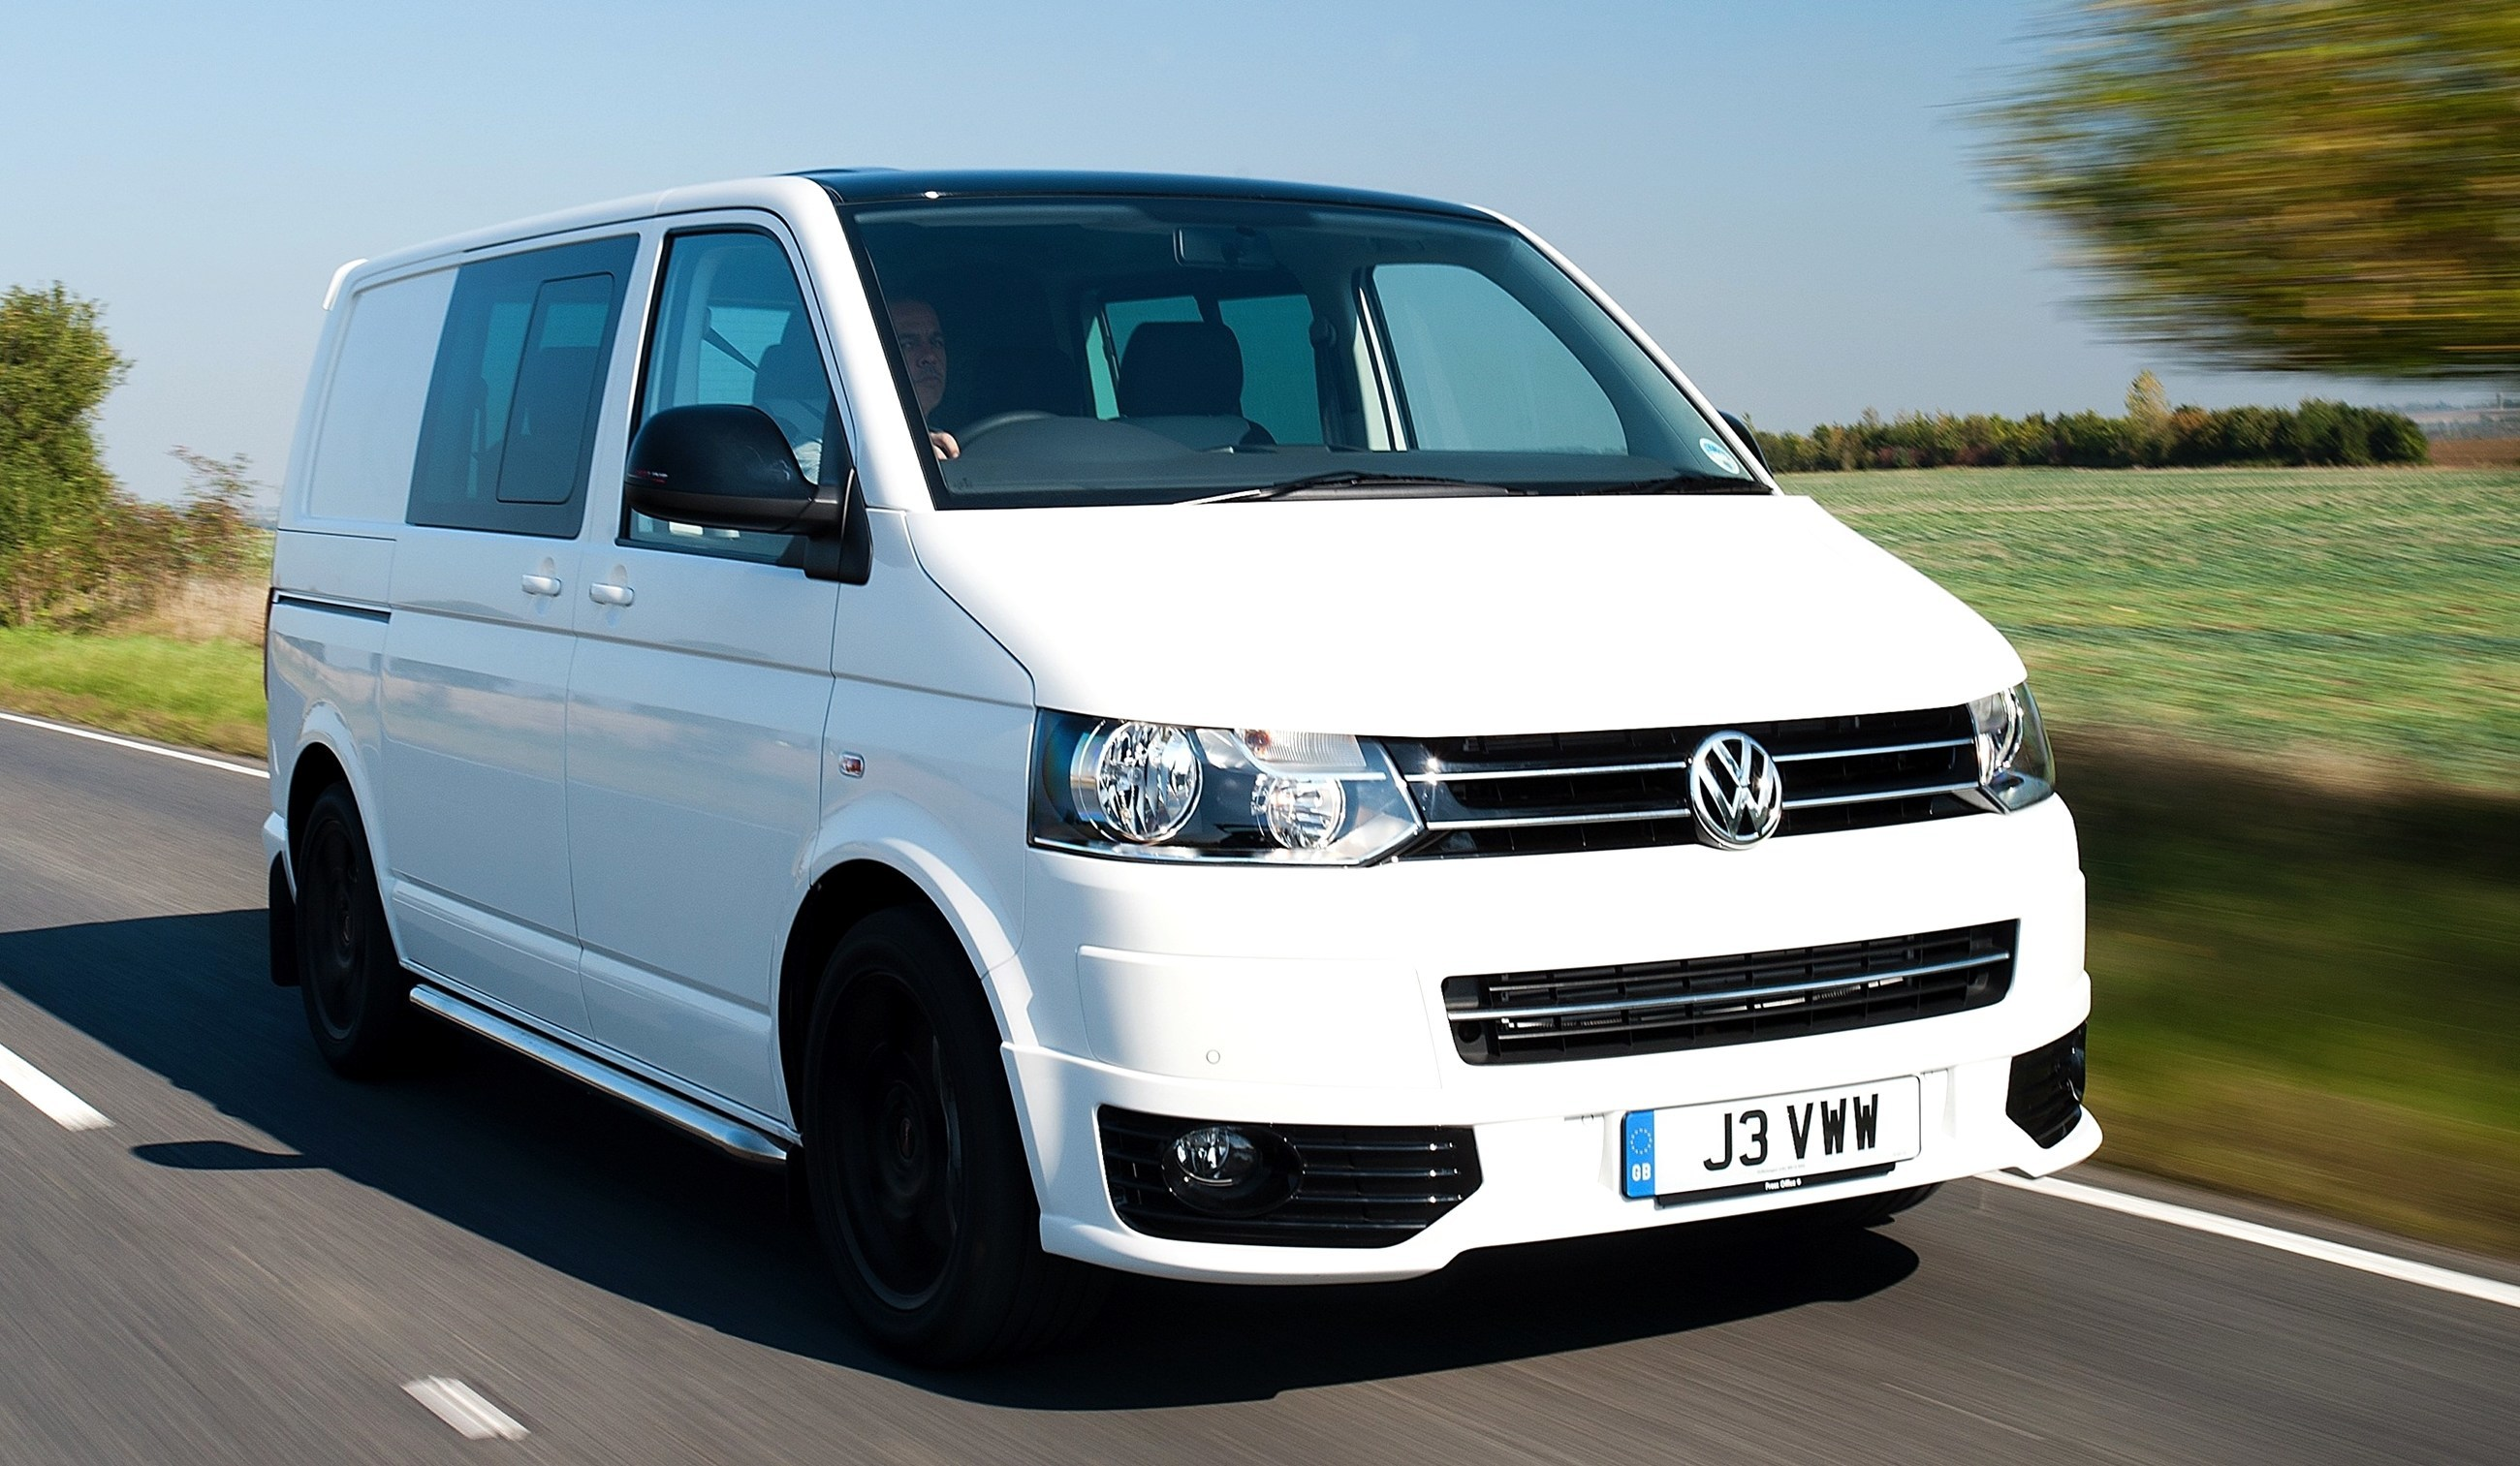 But The Genius Of Vw Model Lines Is Not All Doom And Gloom In Small Regional European Markets Like Uk